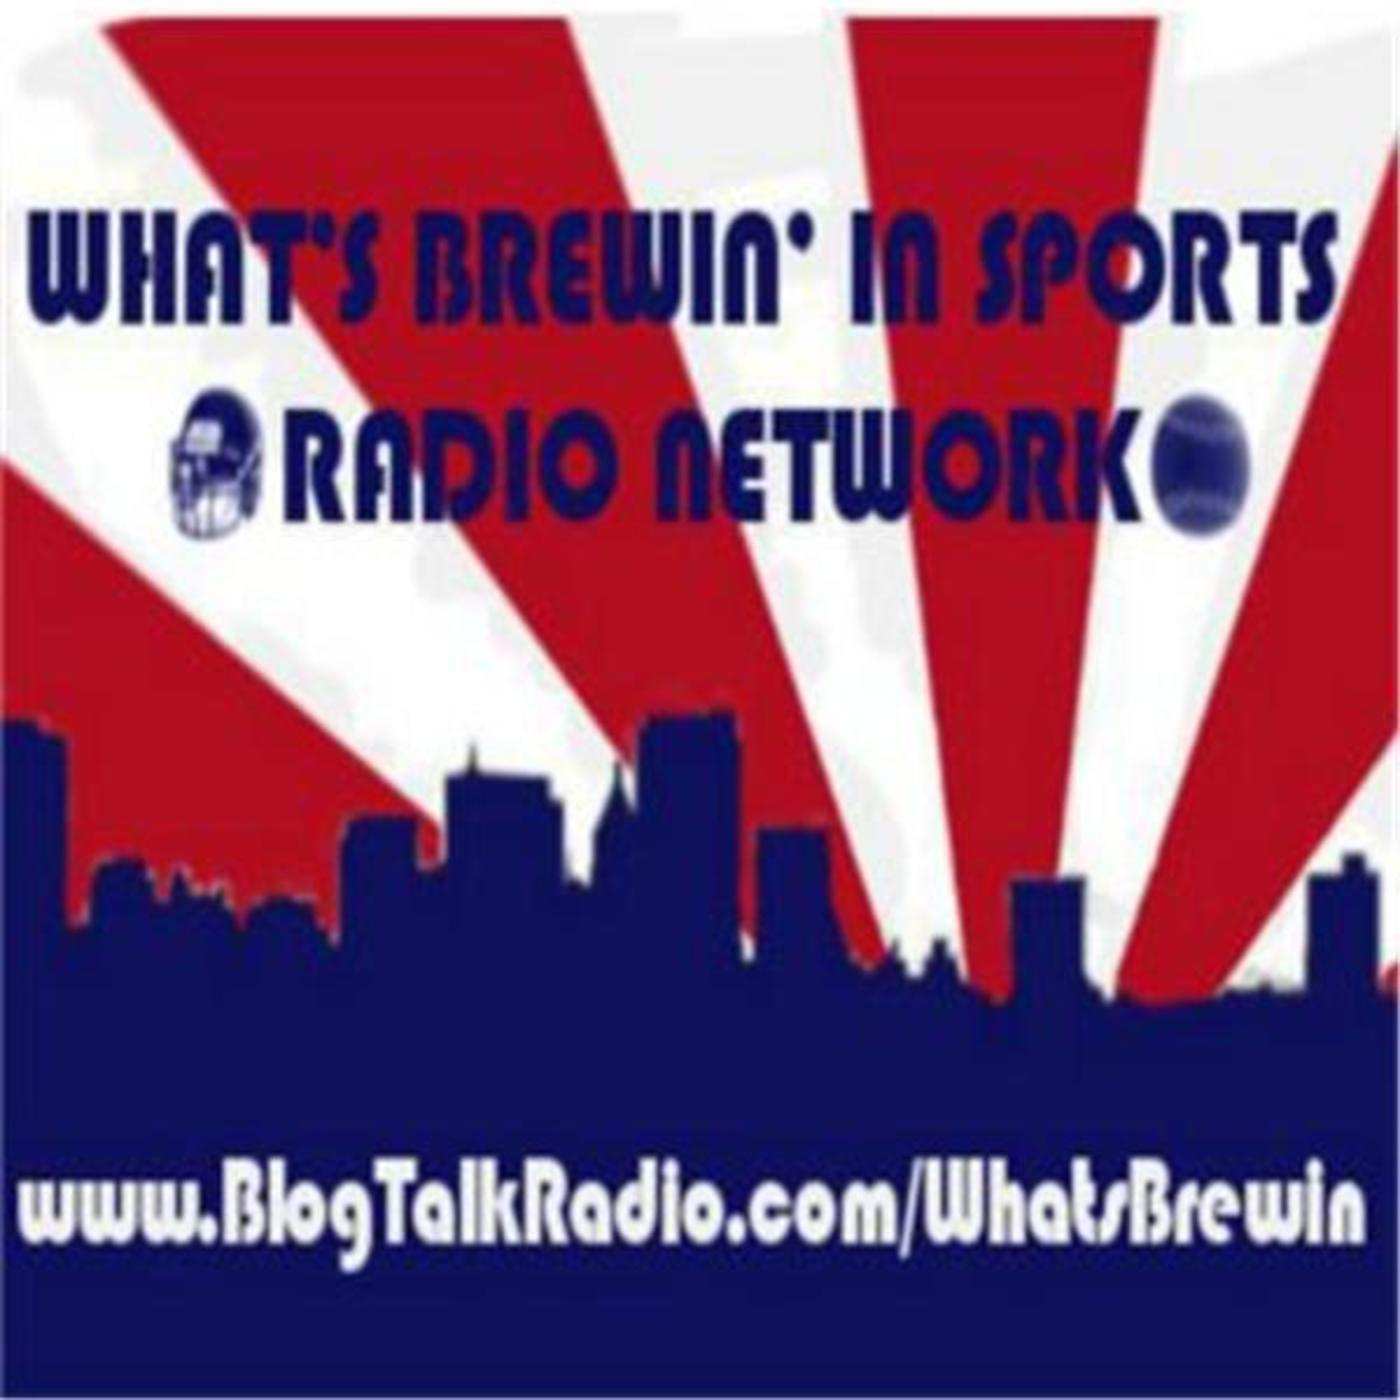 What's Brewin' in Sports Radio Network